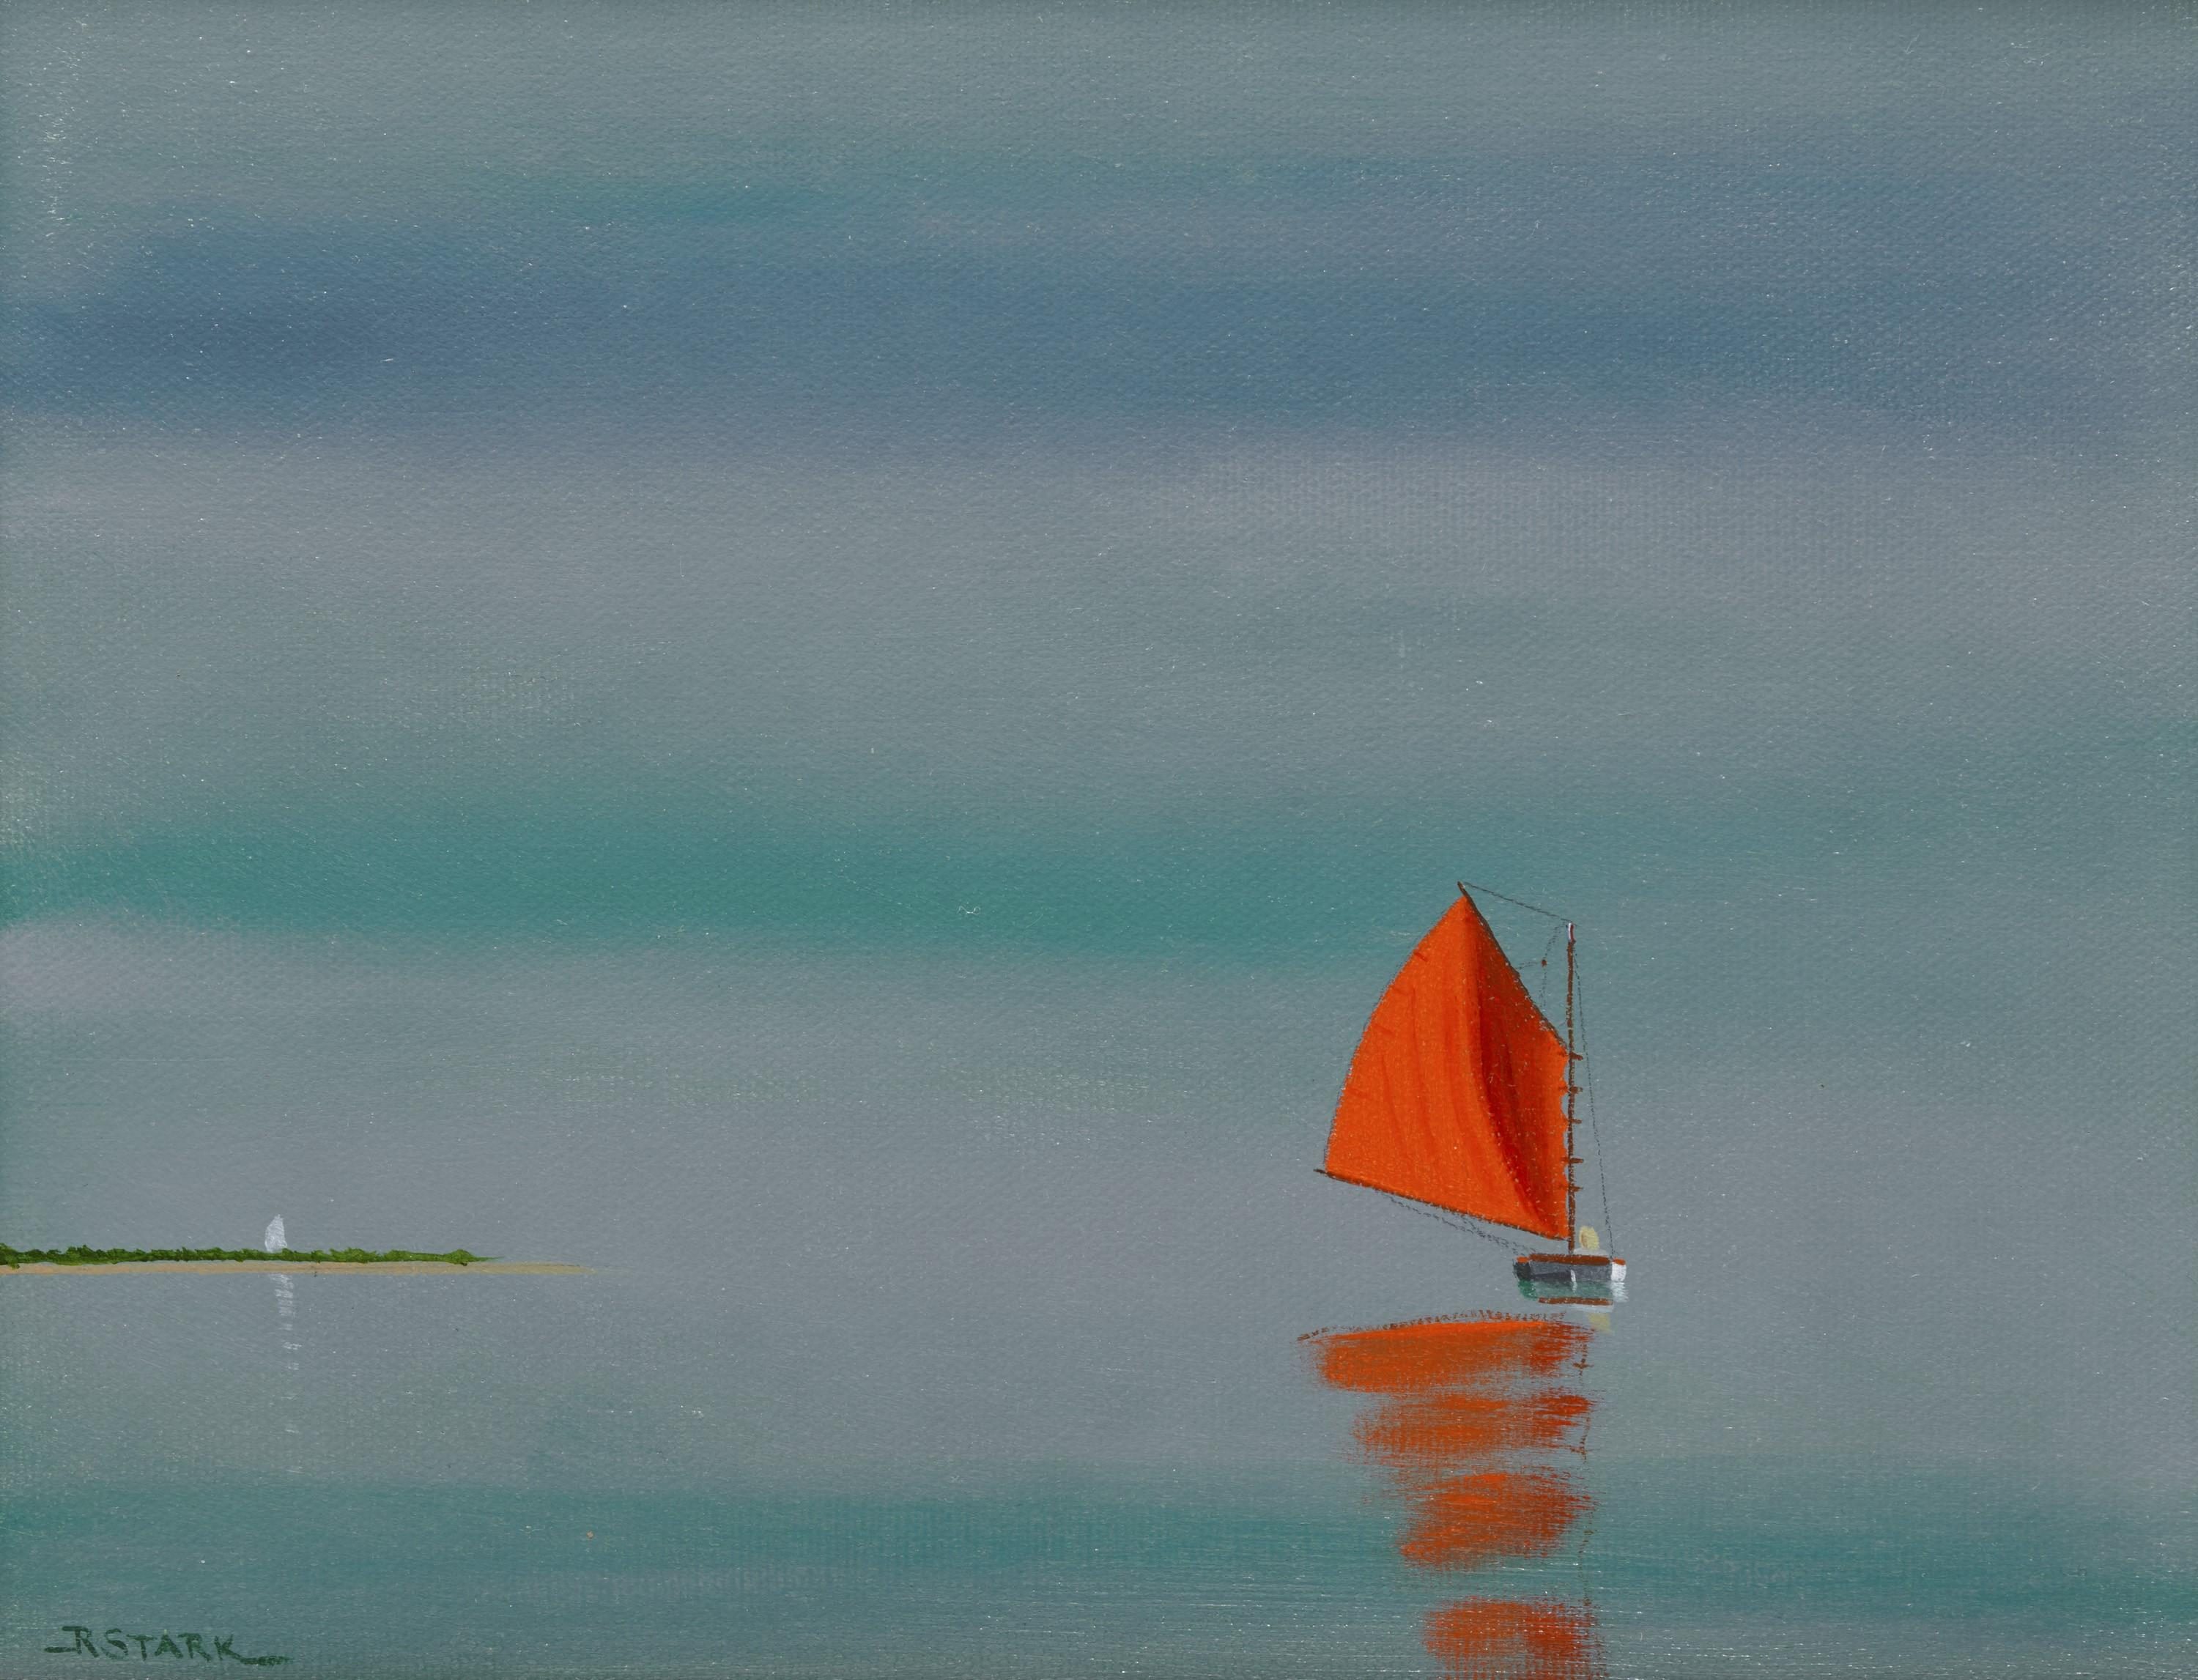 ROBERT W. STARK, JR., (American,1933-2014), Red Sail, oil on canvas, 8 x 10 in., frame: 10 1/2 x 12 1/2 in.